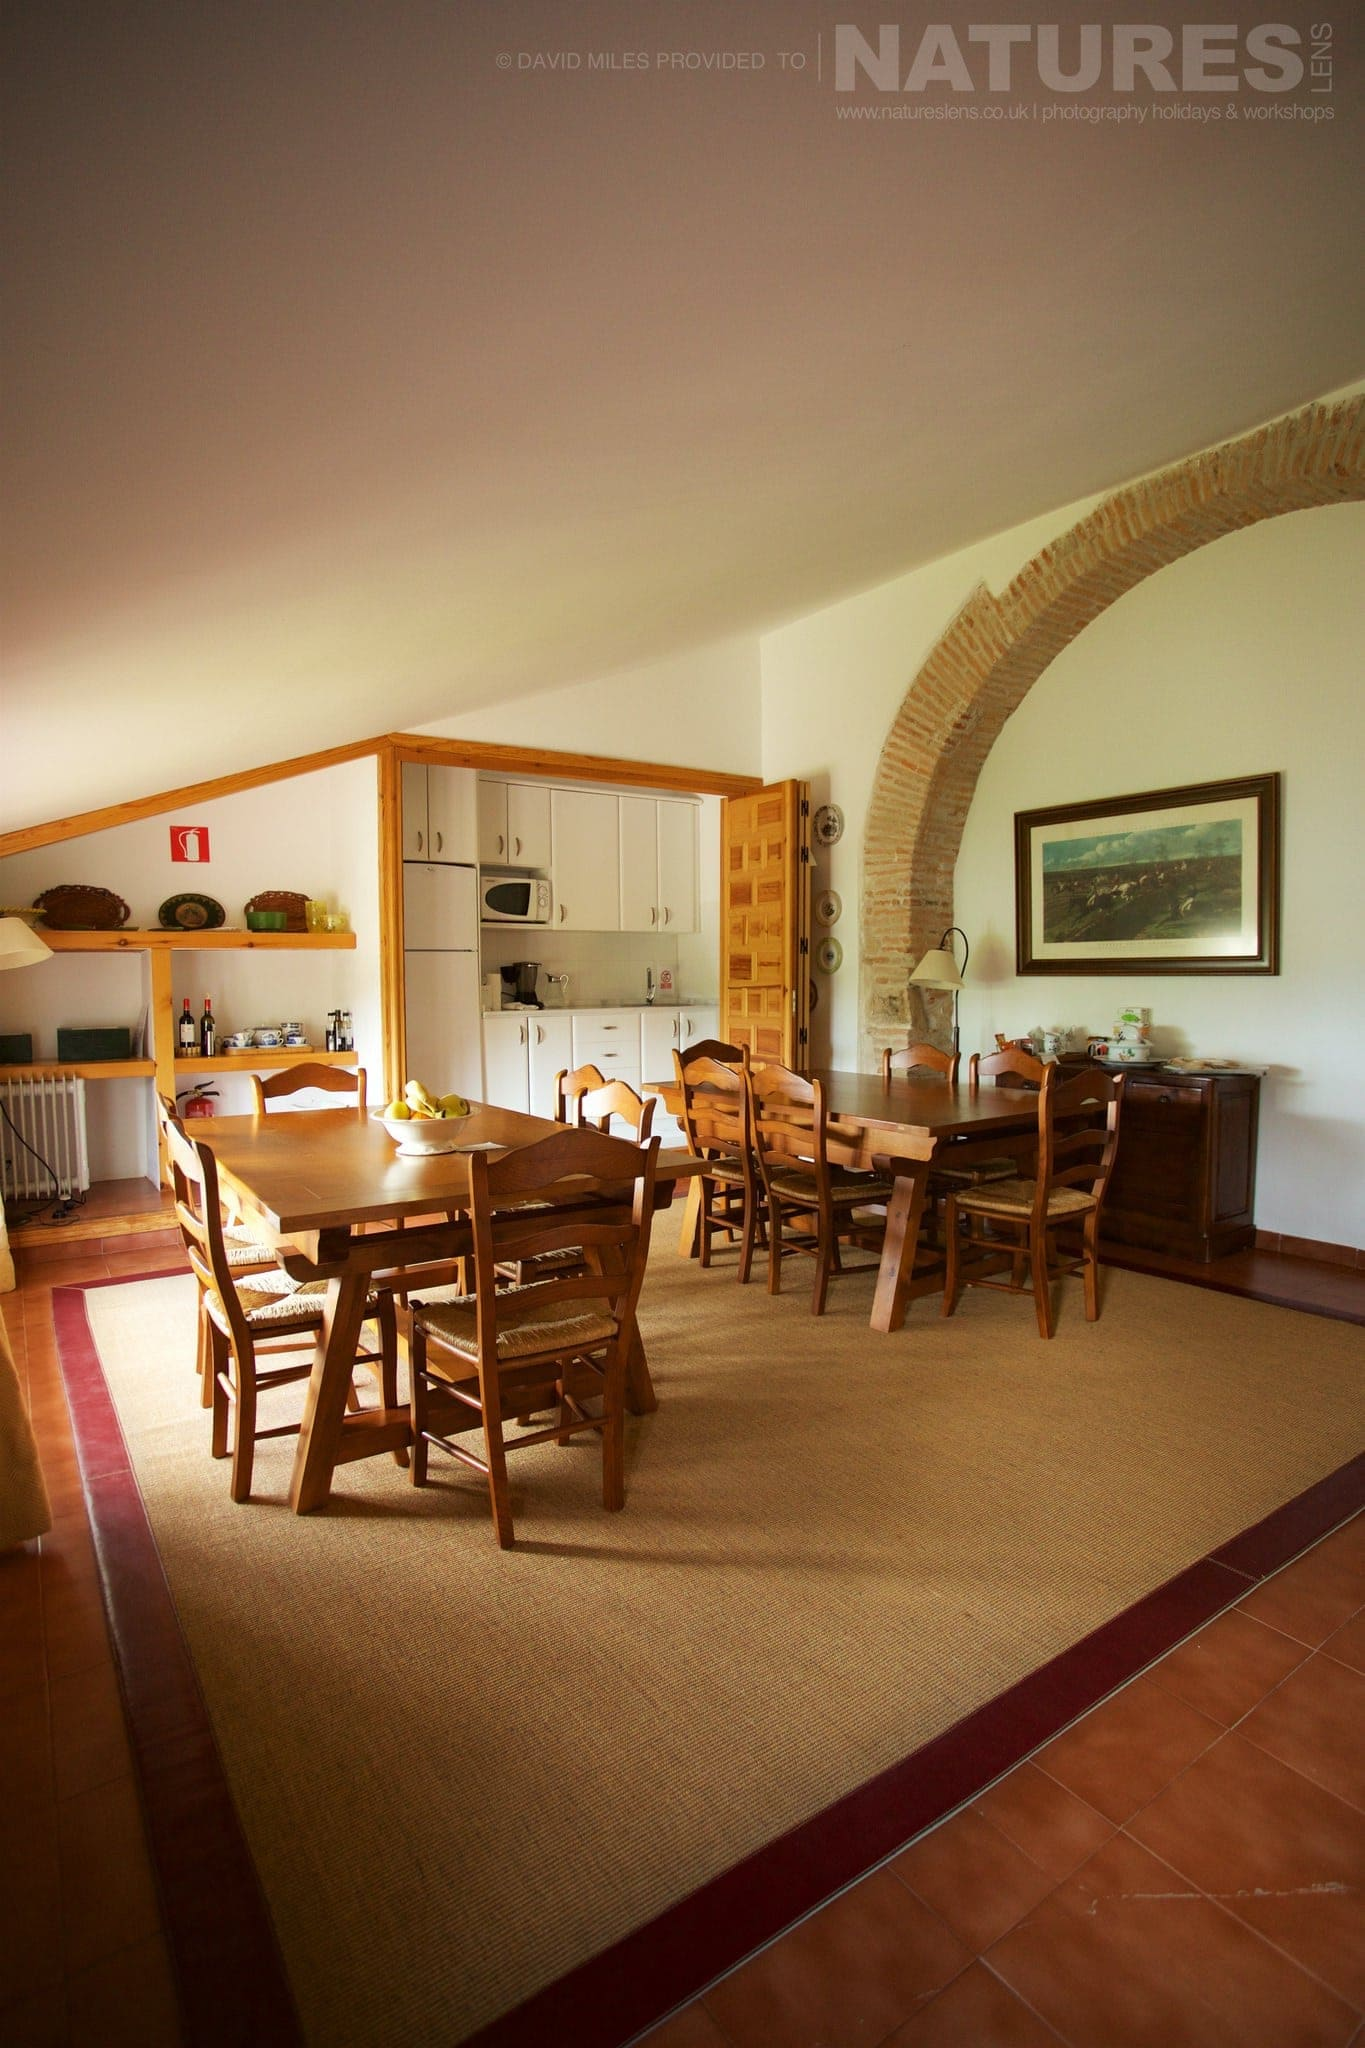 The Dining Area Of The Casa Which Is The Base For The Holiday Stay   Photographed On The Estate Used For The NaturesLens Eagles Of Extremadura Photography Holiday